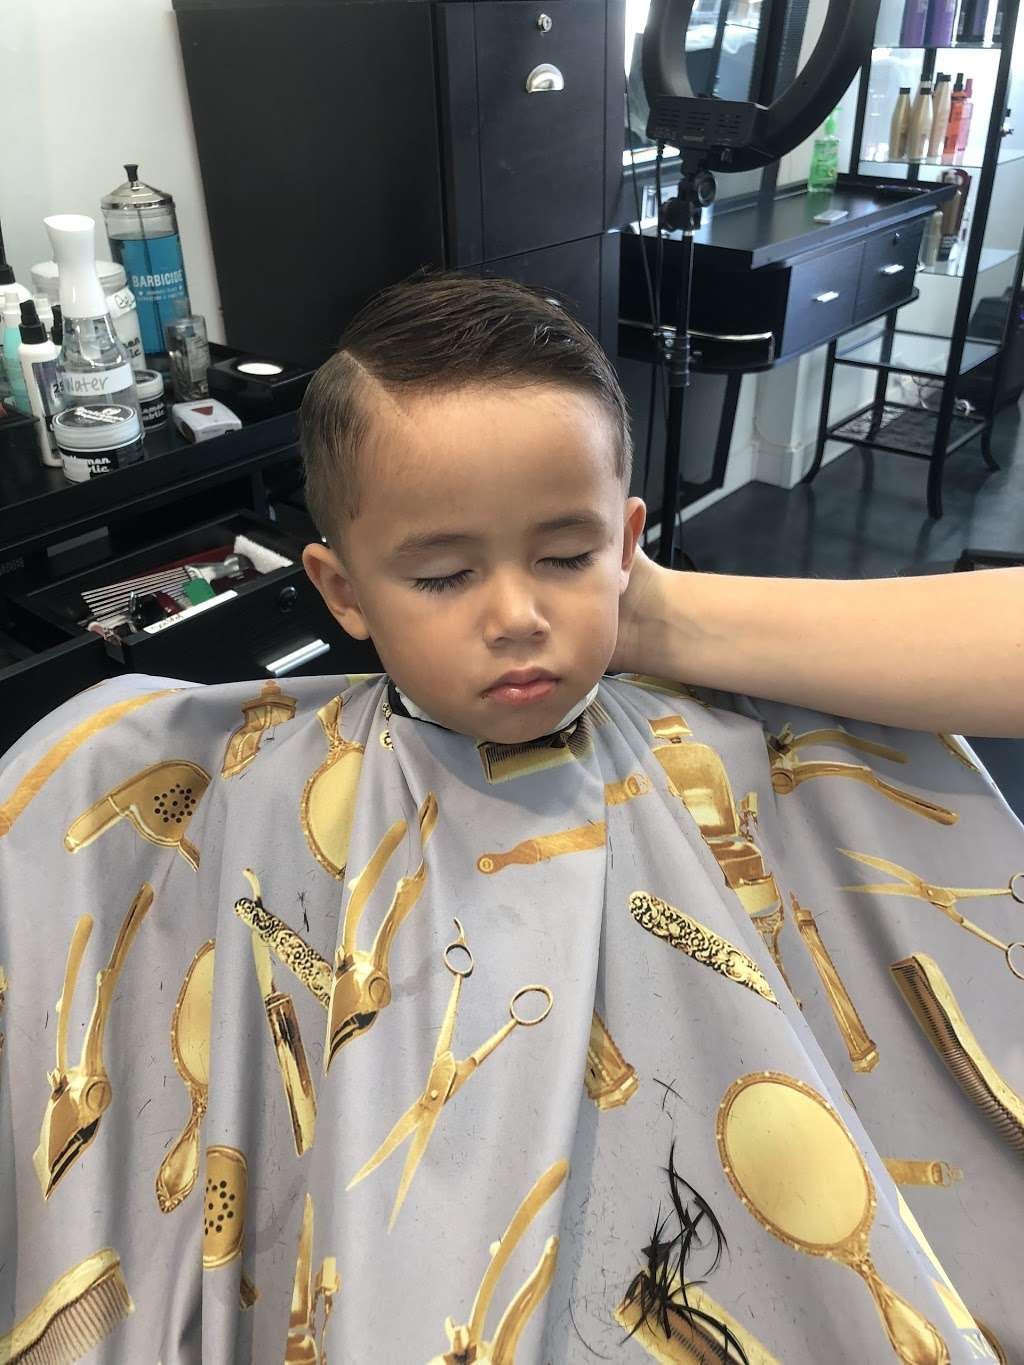 Studio G beauty salon & Barber shop - hair care  | Photo 9 of 10 | Address: 941 N Michillinda Ave, Pasadena, CA 91107, USA | Phone: (626) 510-6366